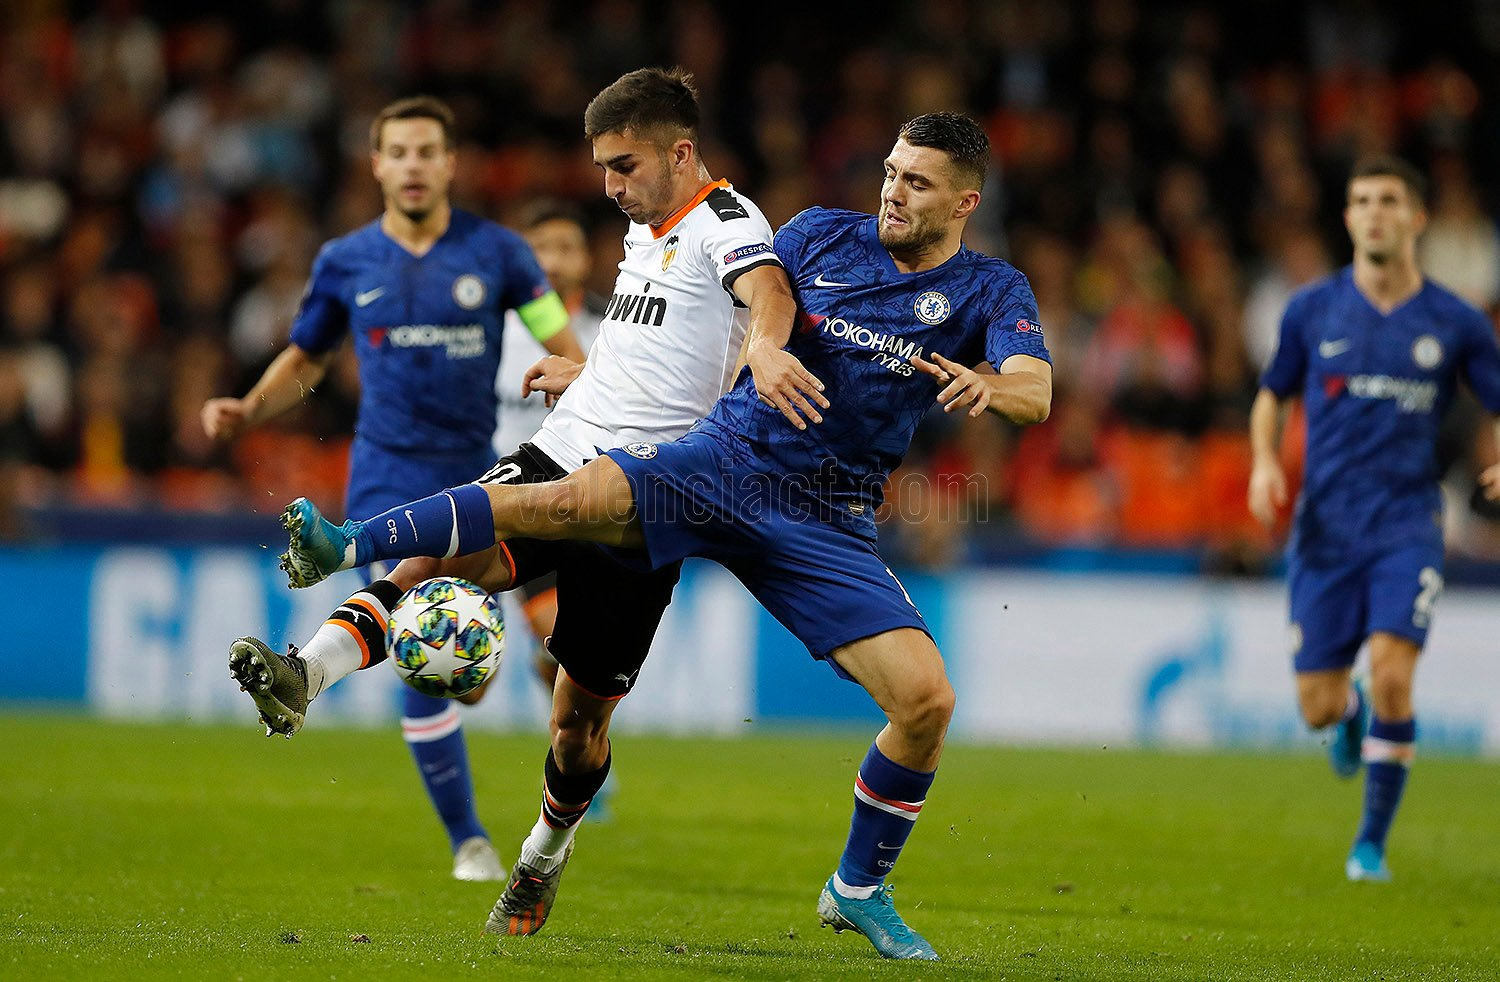 UCL: Valencia – Chelsea Thriller Ends in  2-2 Draw at The Mestalla